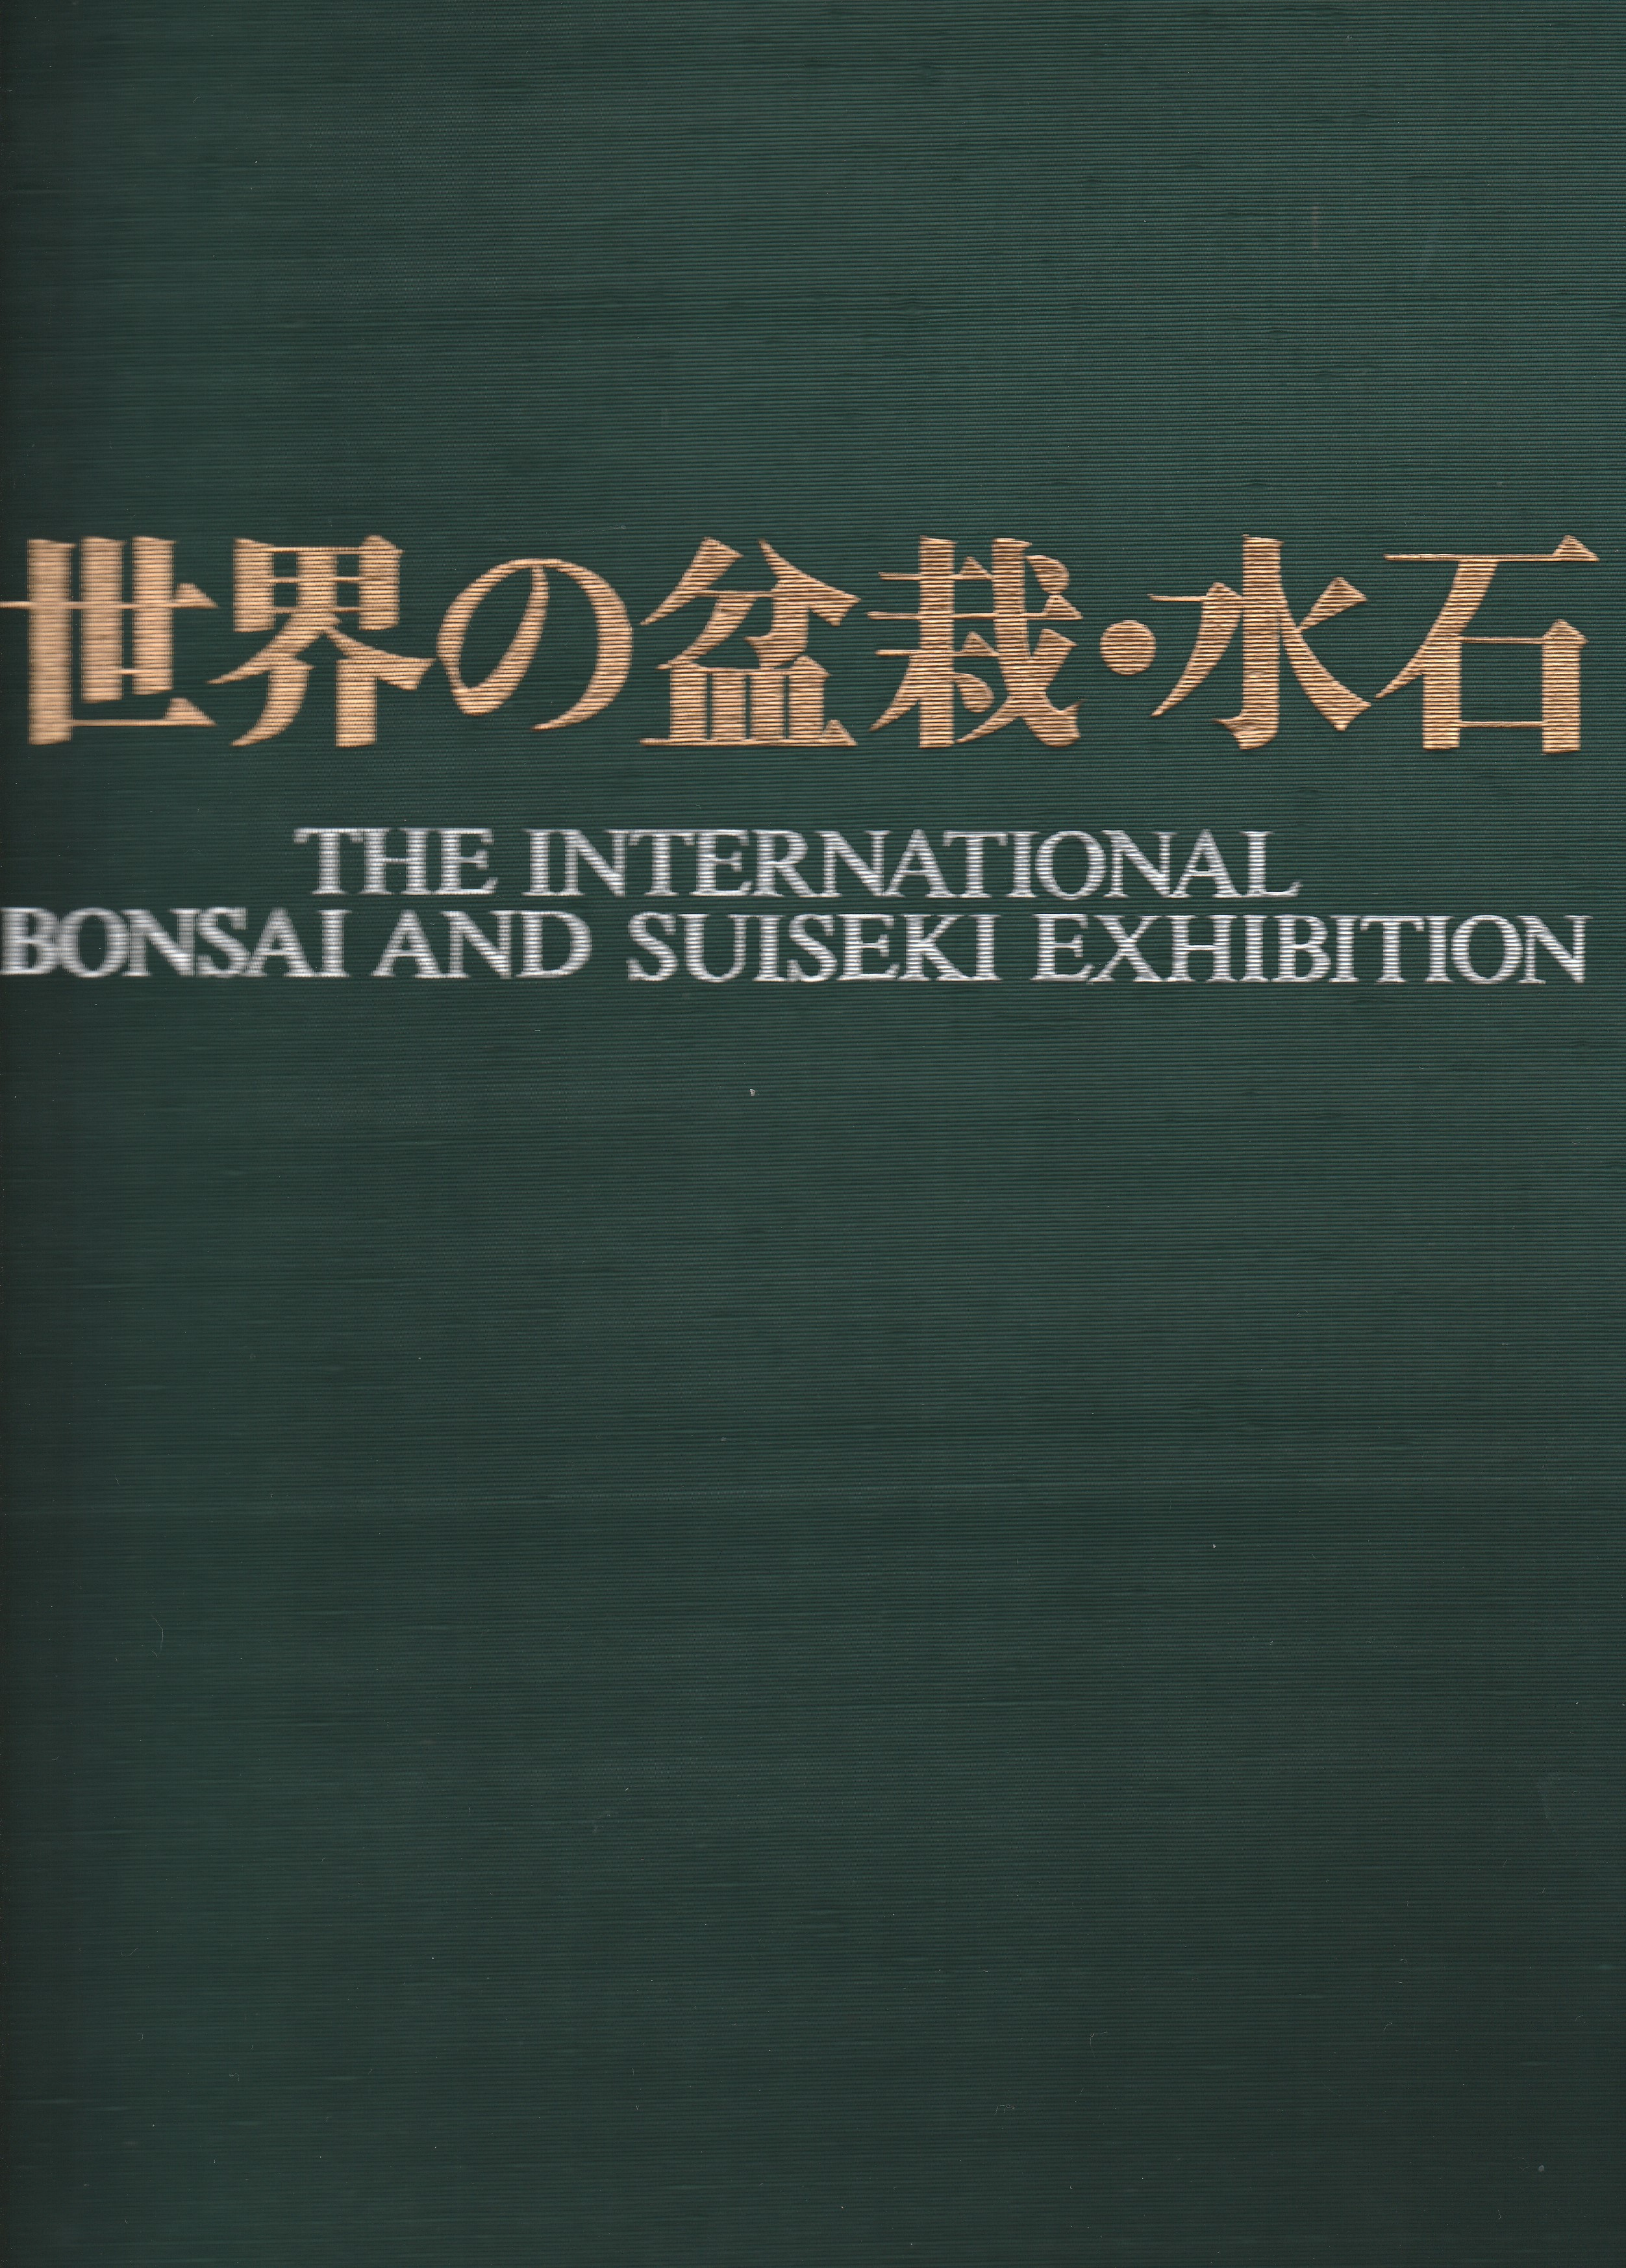 Bonsai a suiseki na Expo 1980